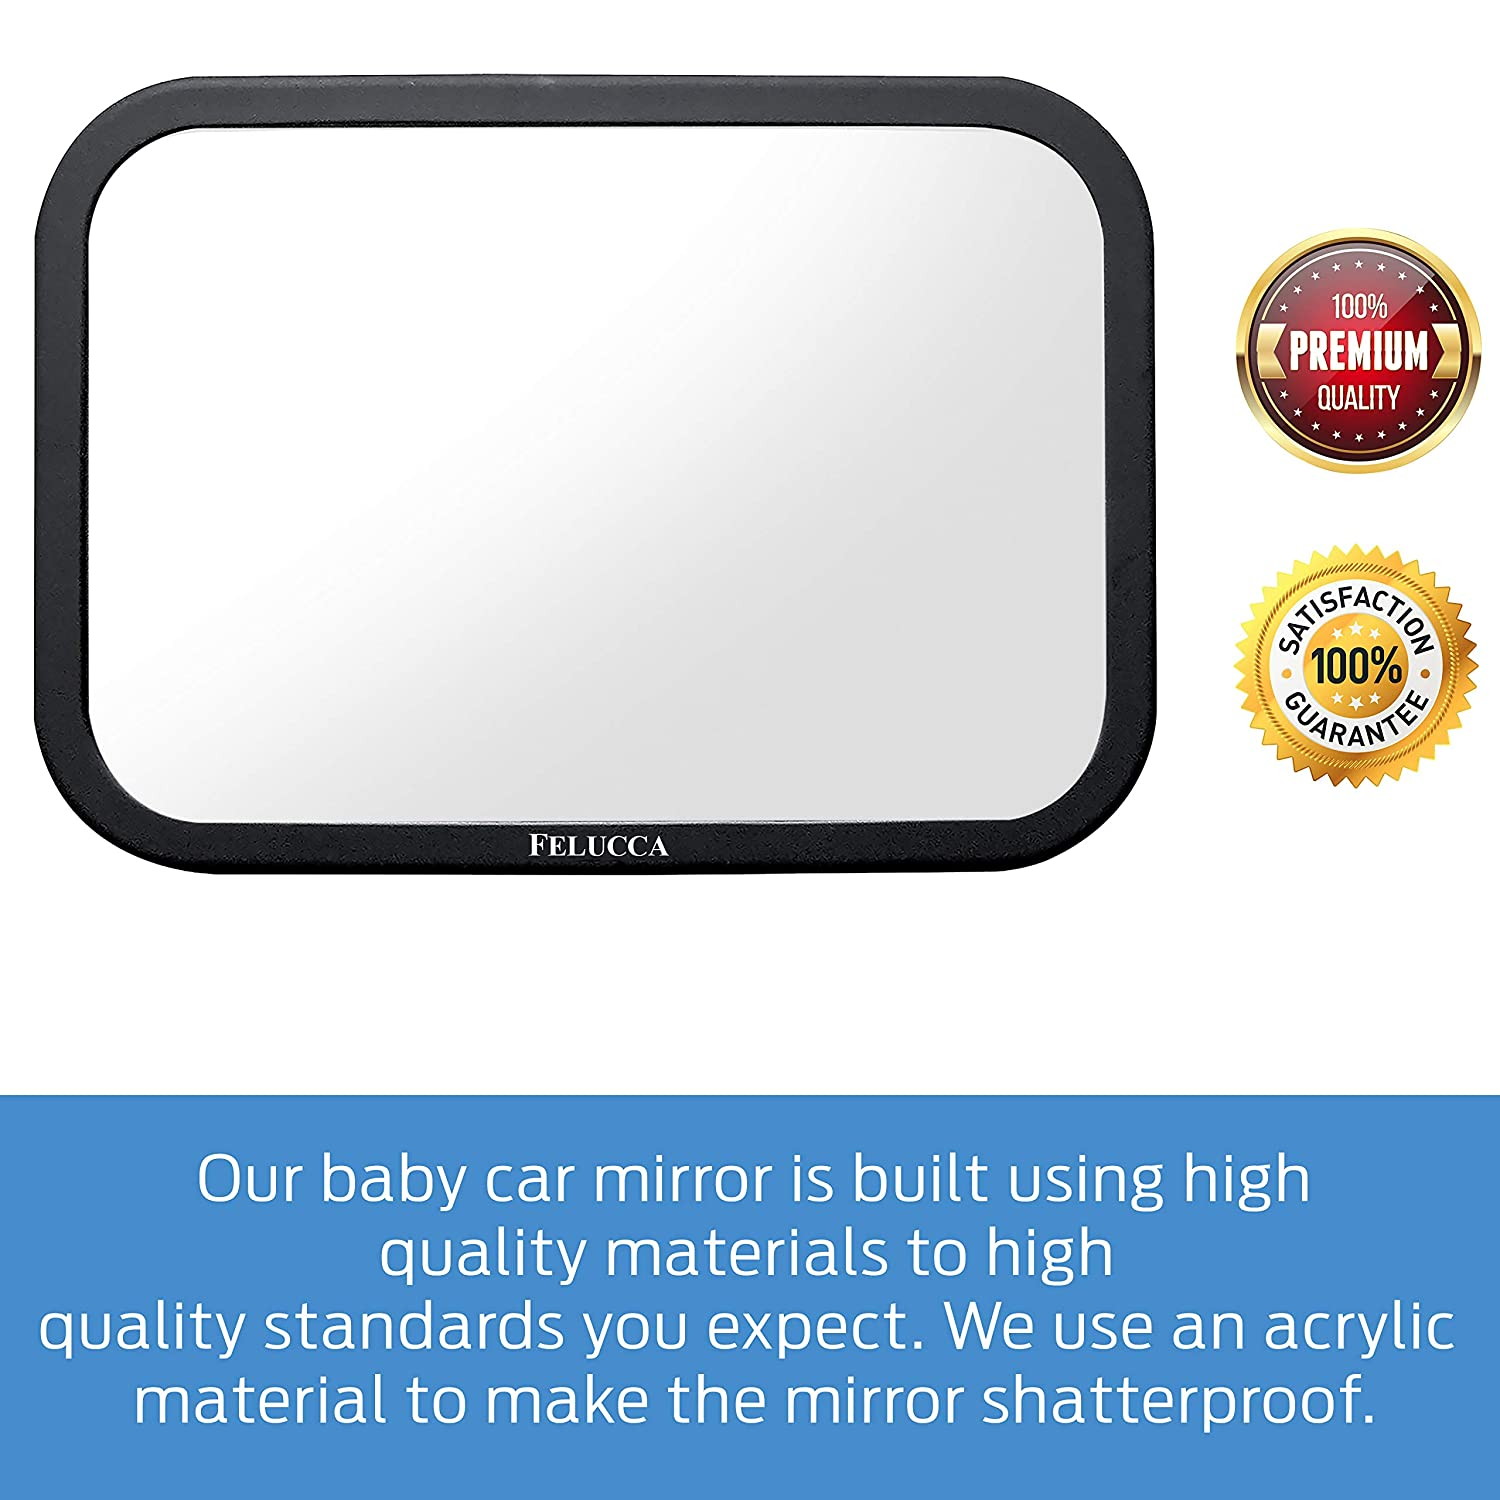 Acrylic Mirror Makes it Shatterproof Safely View Infant in Rear Facing Car Seat Baby Car Mirror by Felucca 360/° Pivot for Best Angle 100/% Lifetime Satisfaction Guarantee